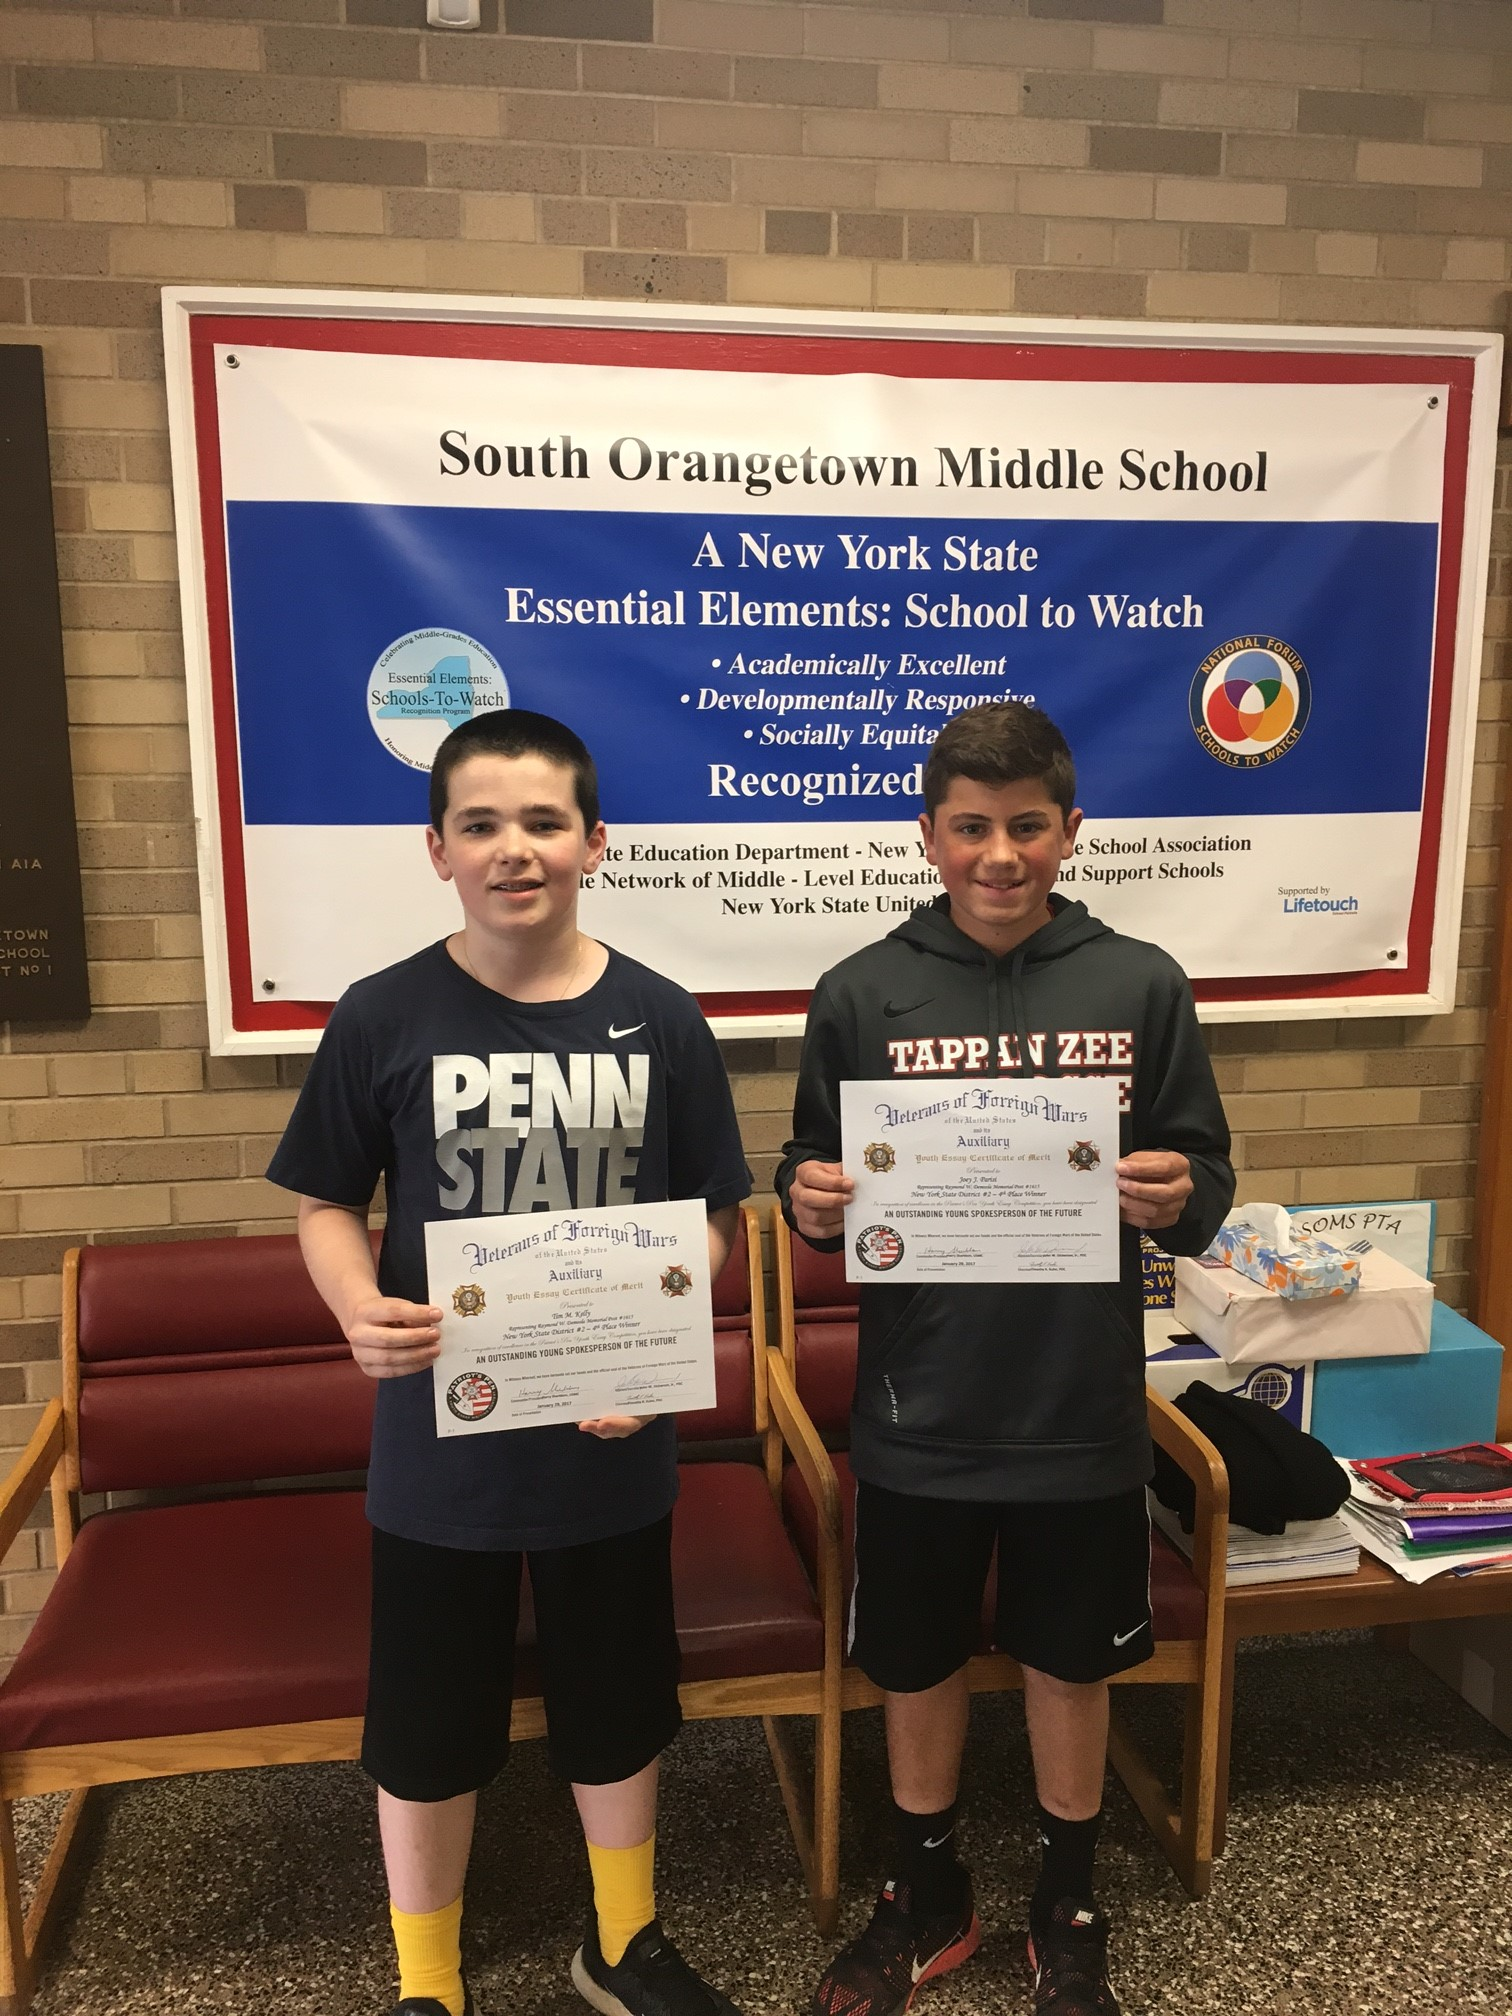 patriots pen vfw essay Region 15 students participate in vfw patriot's - southbury, ct - the patriot's pen is a national youth essay contest that encourages students to write essays expressing their views on patriotic themes.